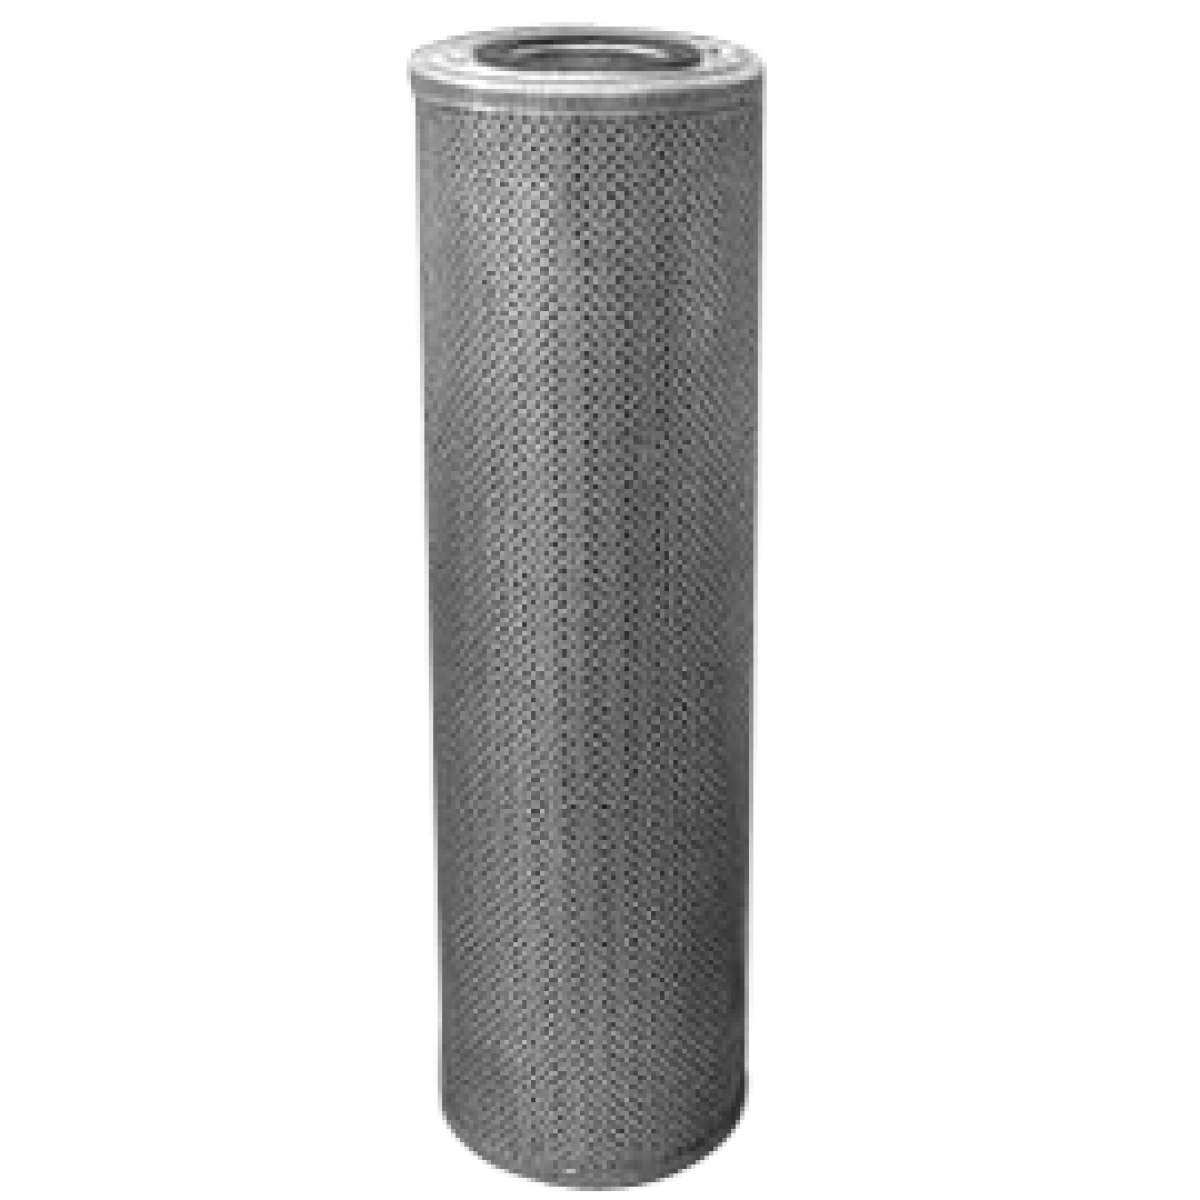 Full-flow Micro-fibreglass Filter Element (6 micron)